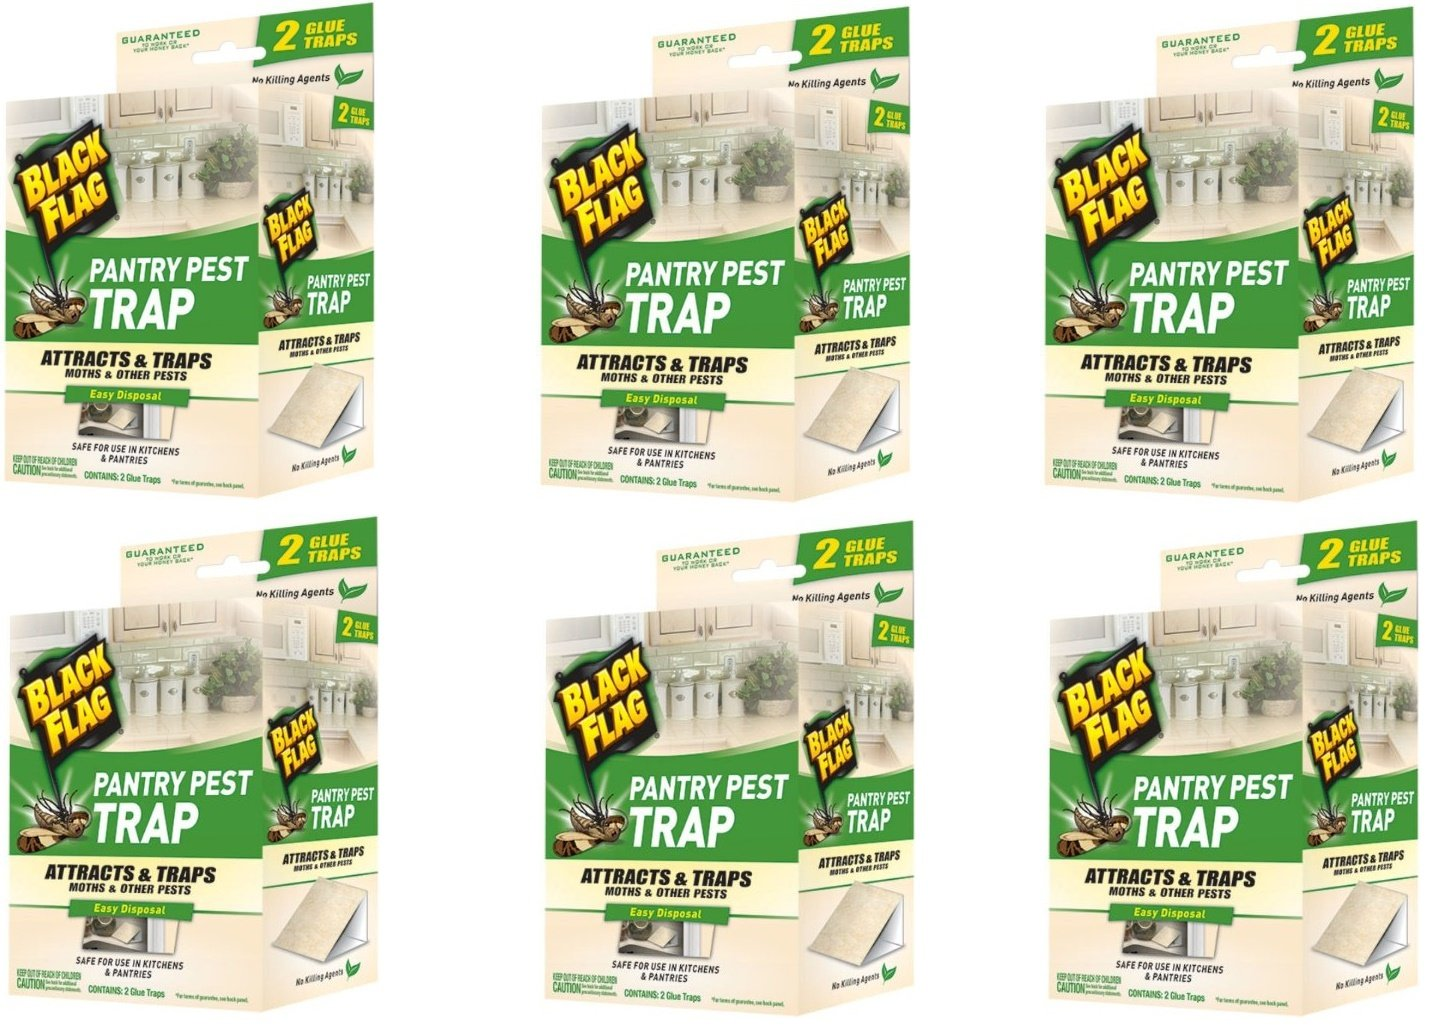 Black Flag Pantry Pest Traps - 12 Total(6 Packages with 2 Traps Each) by Black Flag